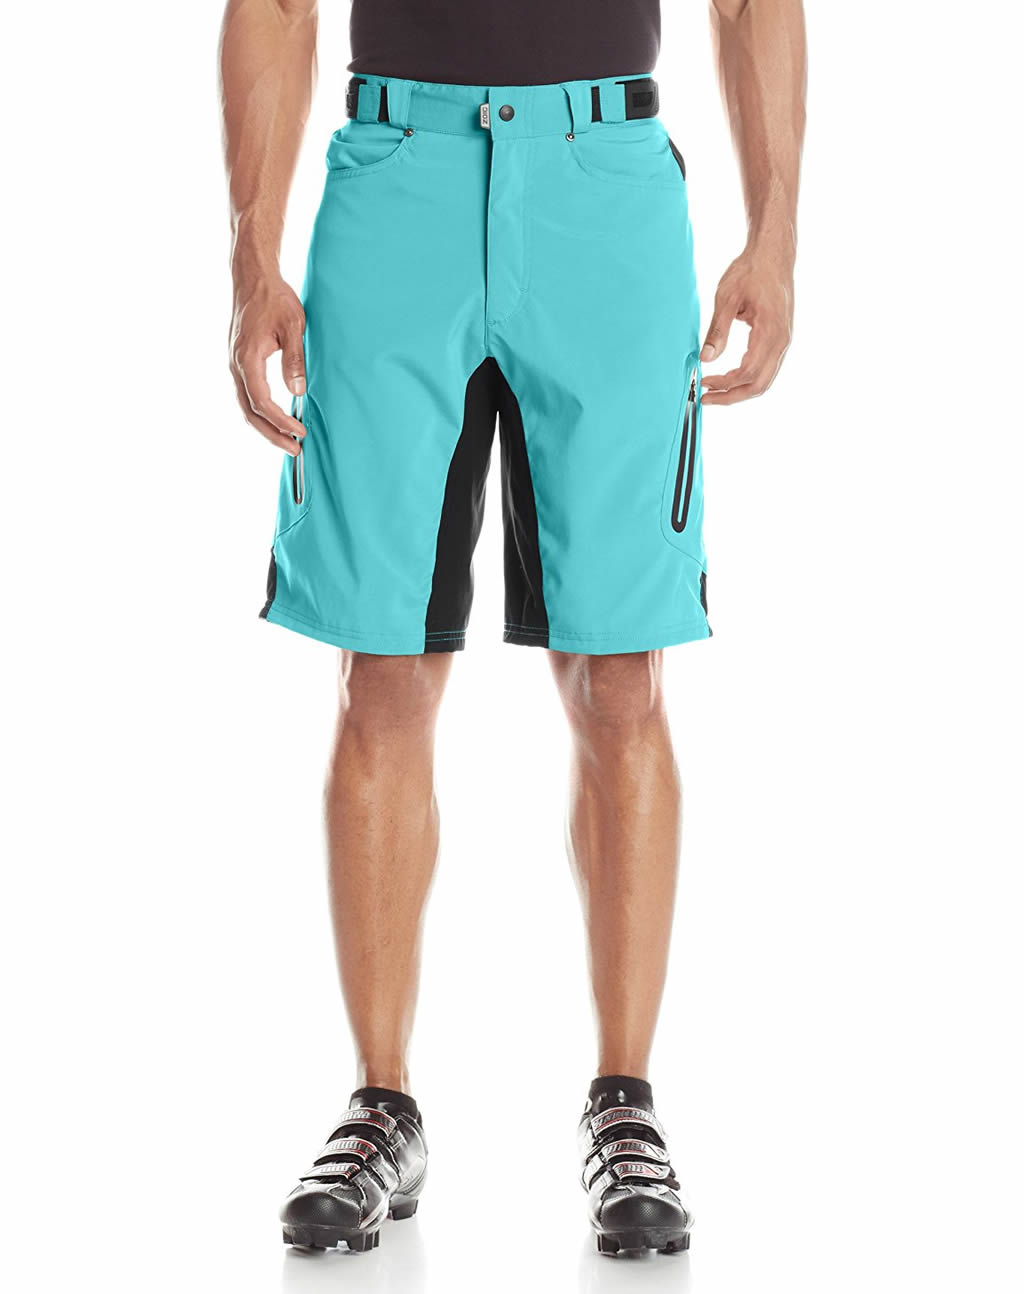 Teal ZOIC Men's Ether Cycling Shorts